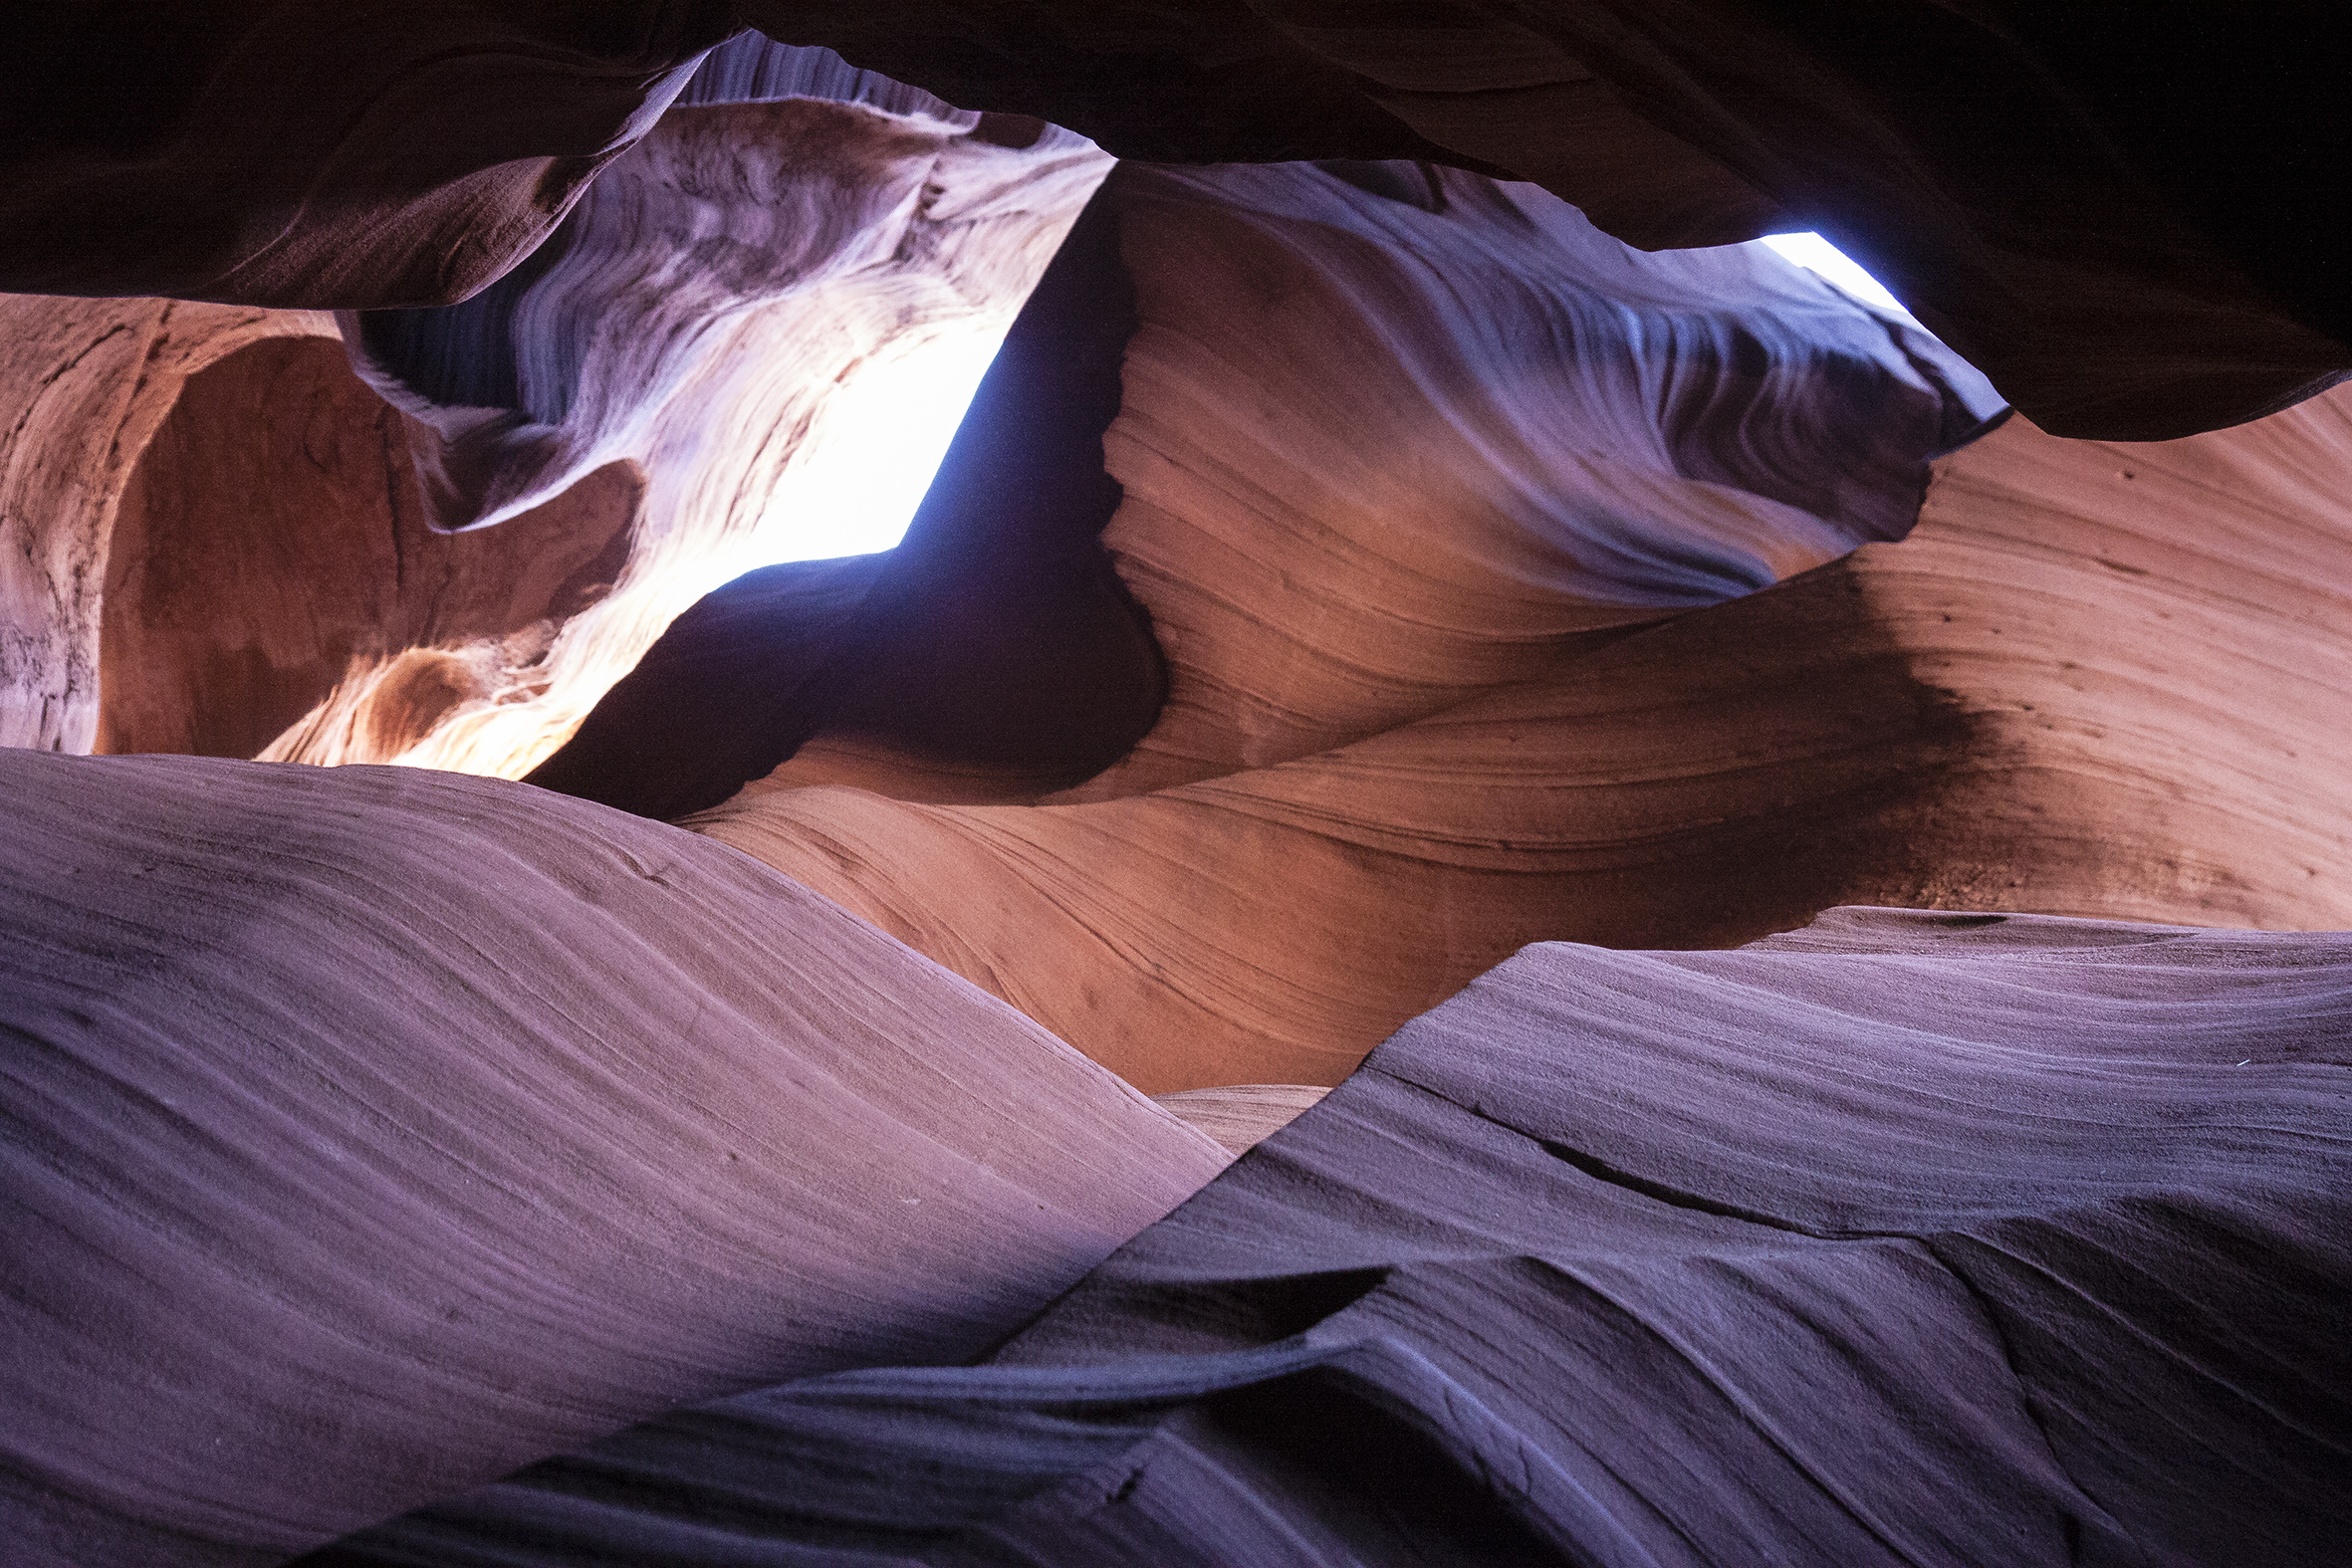 naturaliste-antelope-canyon-reserve-navajo-usa-ouest-2012-marie-colette-becker-10